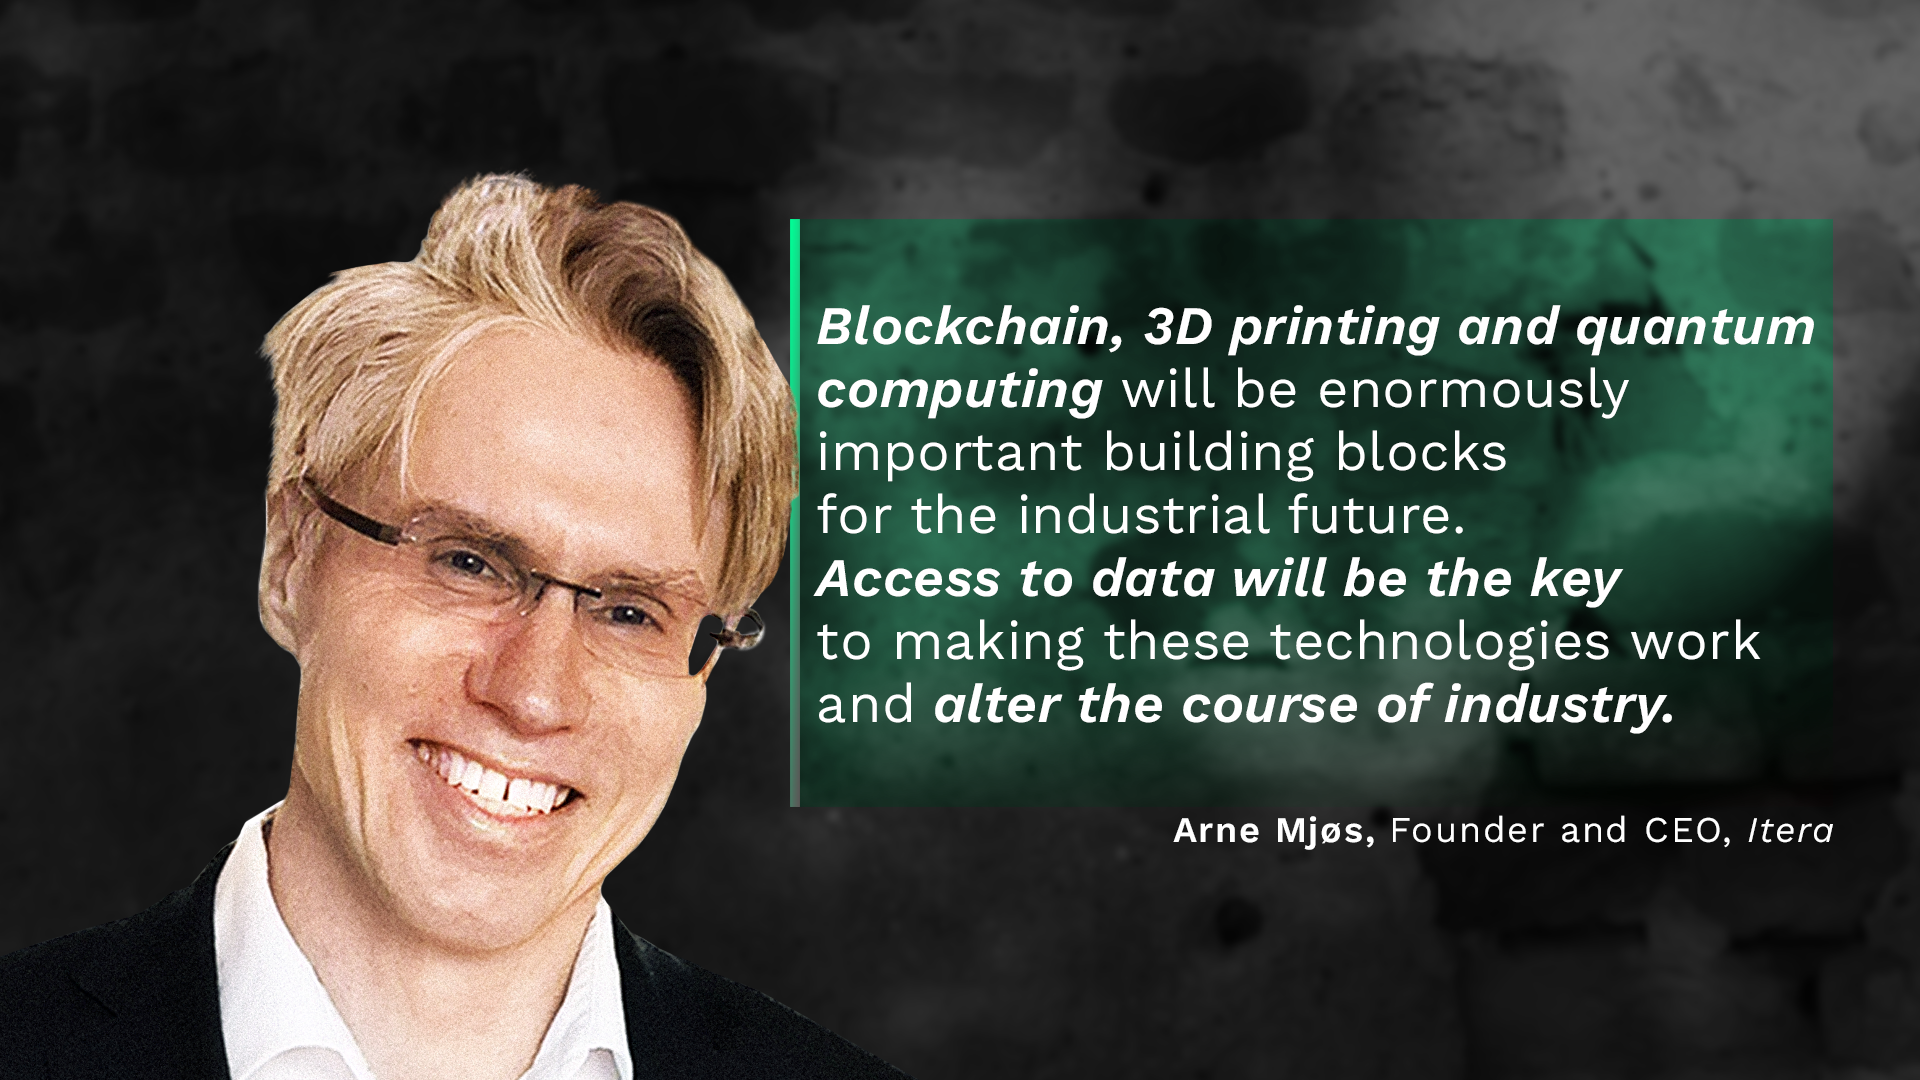 Itera CEO has his eye on these emerging industrial IT trends